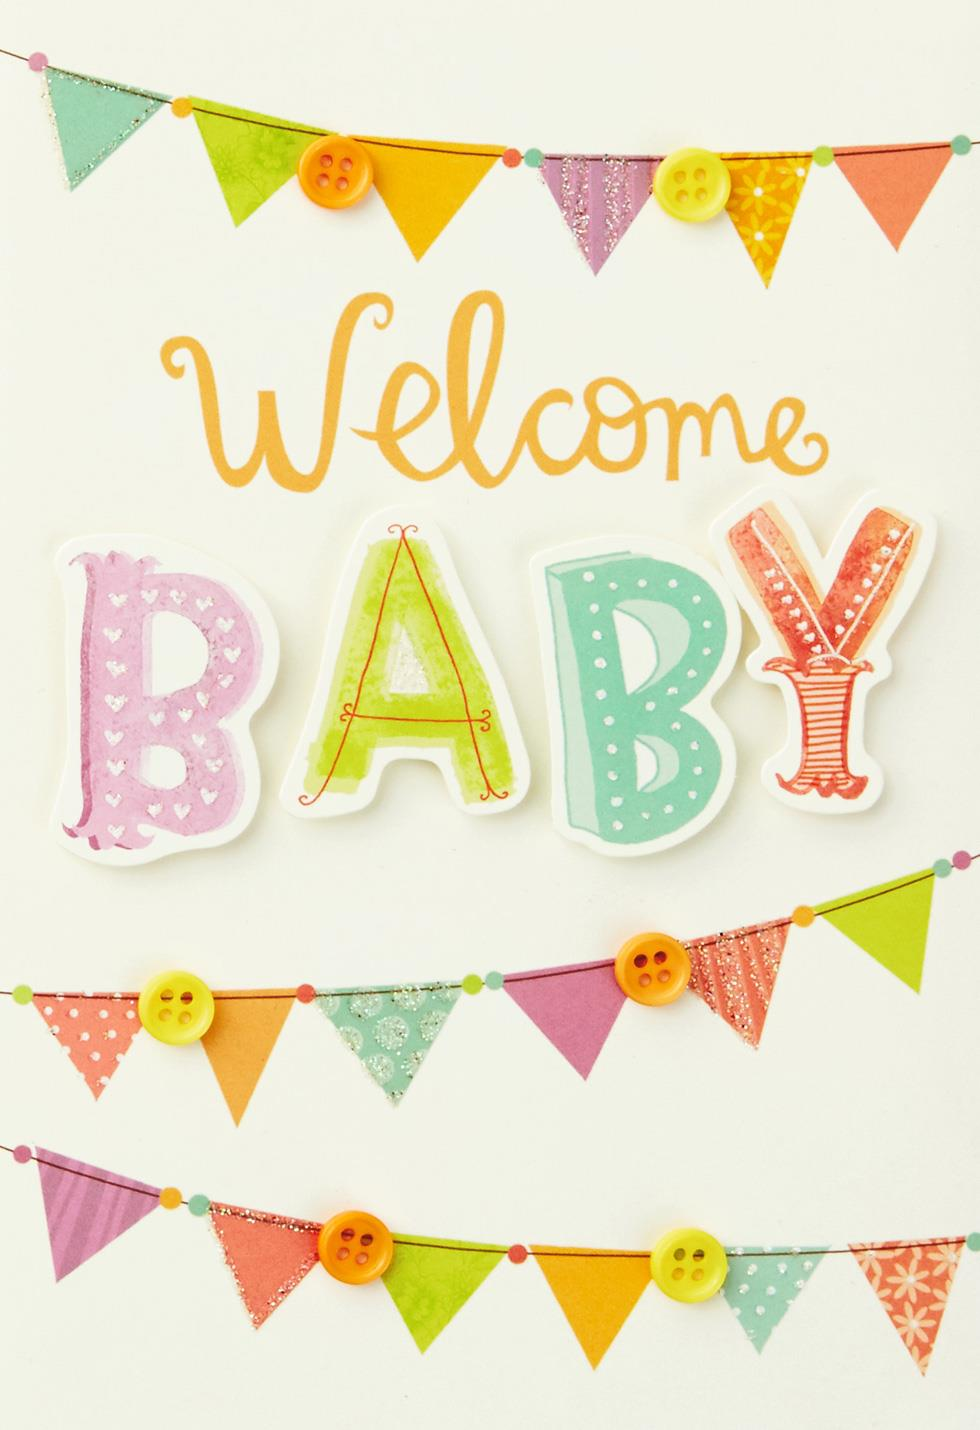 Welcome New Baby Card - Greeting Cards - Hallmark